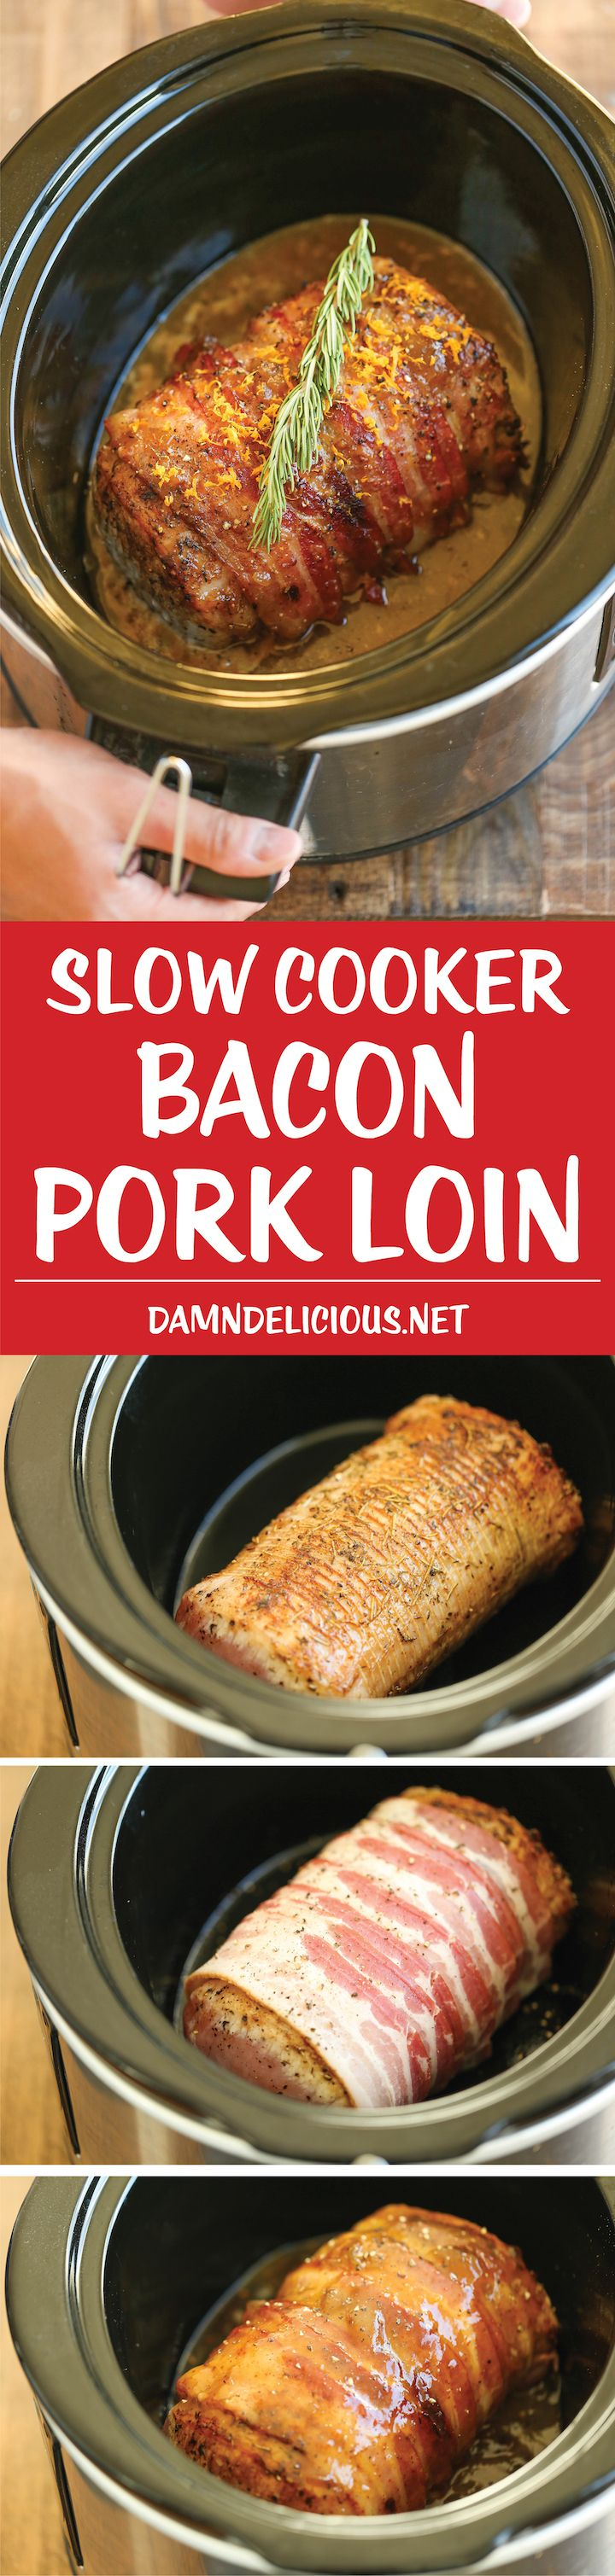 Slow Cooker Bacon Wrapped Pork Loin  Because Bacon Makes Everything  Better, Especially When It's